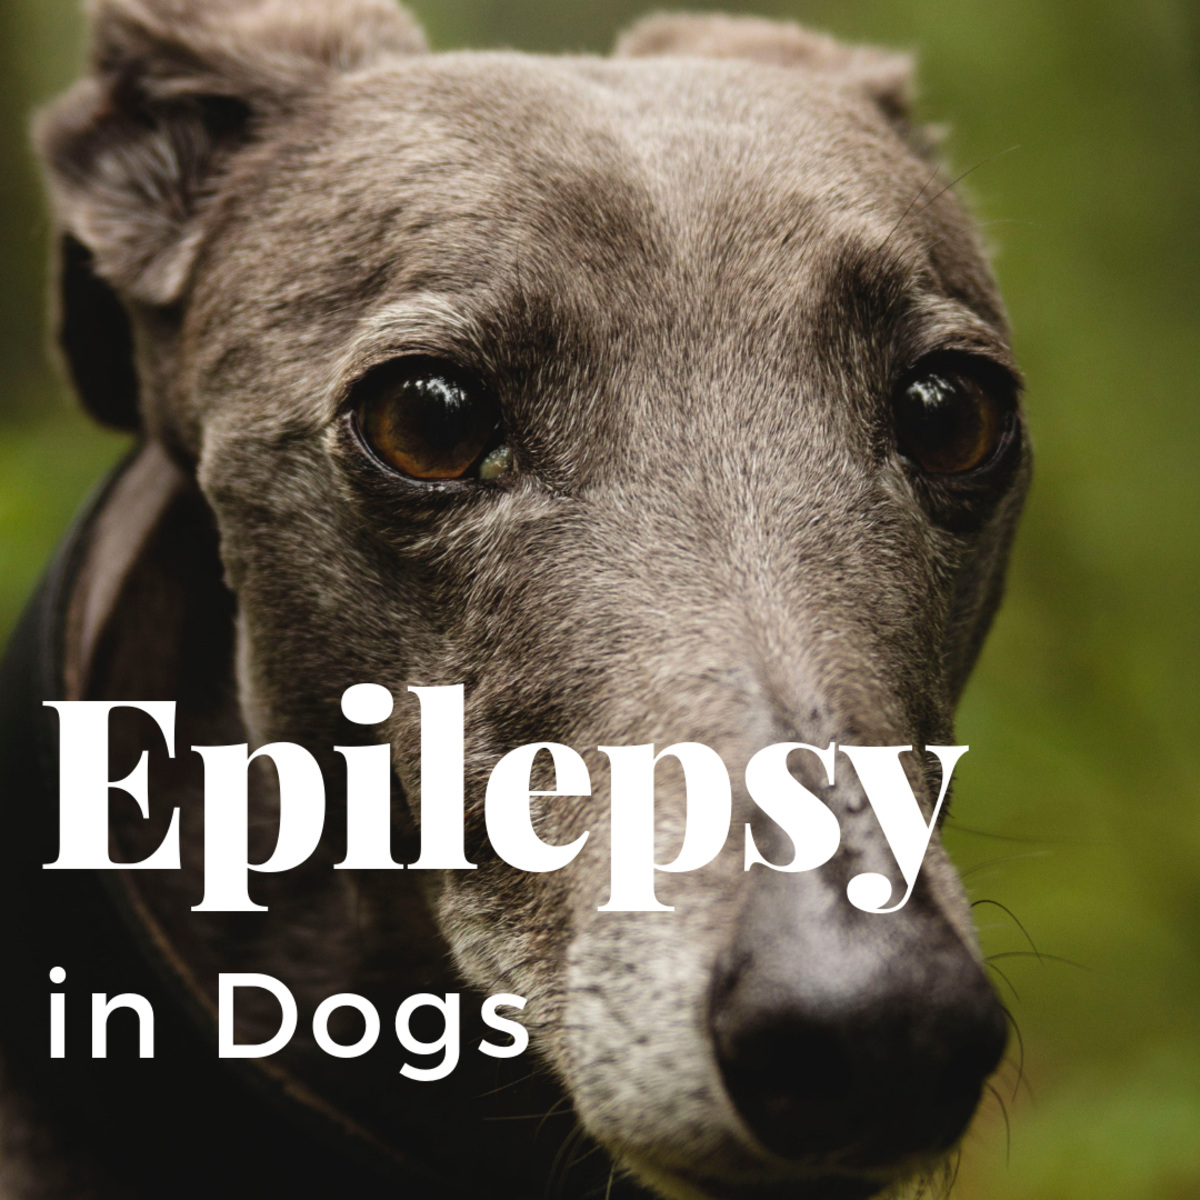 Epilepsy in Greyhounds